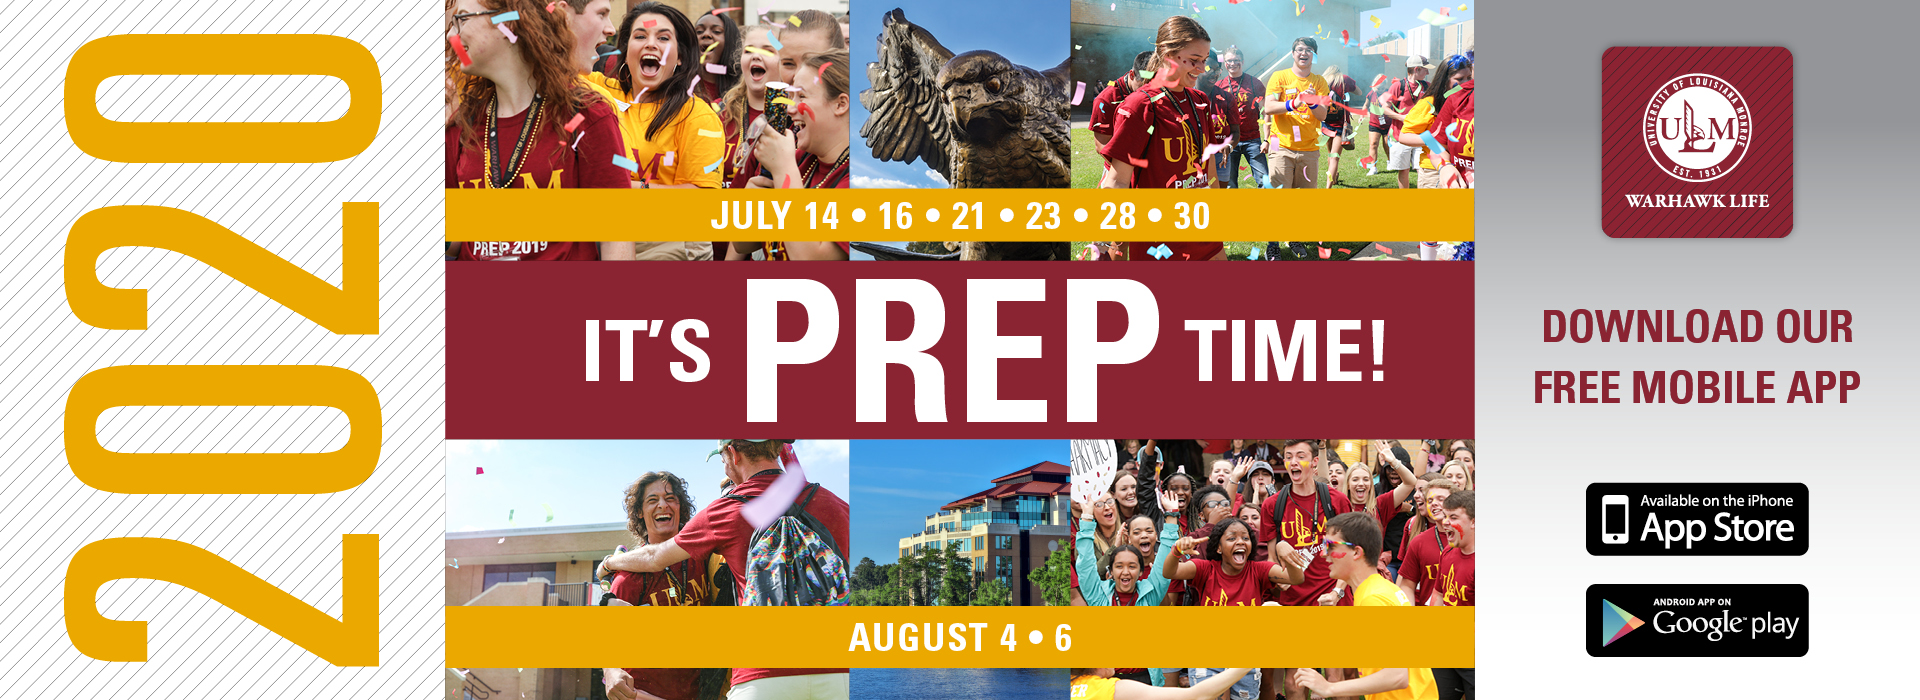 It's PREP time banner ad